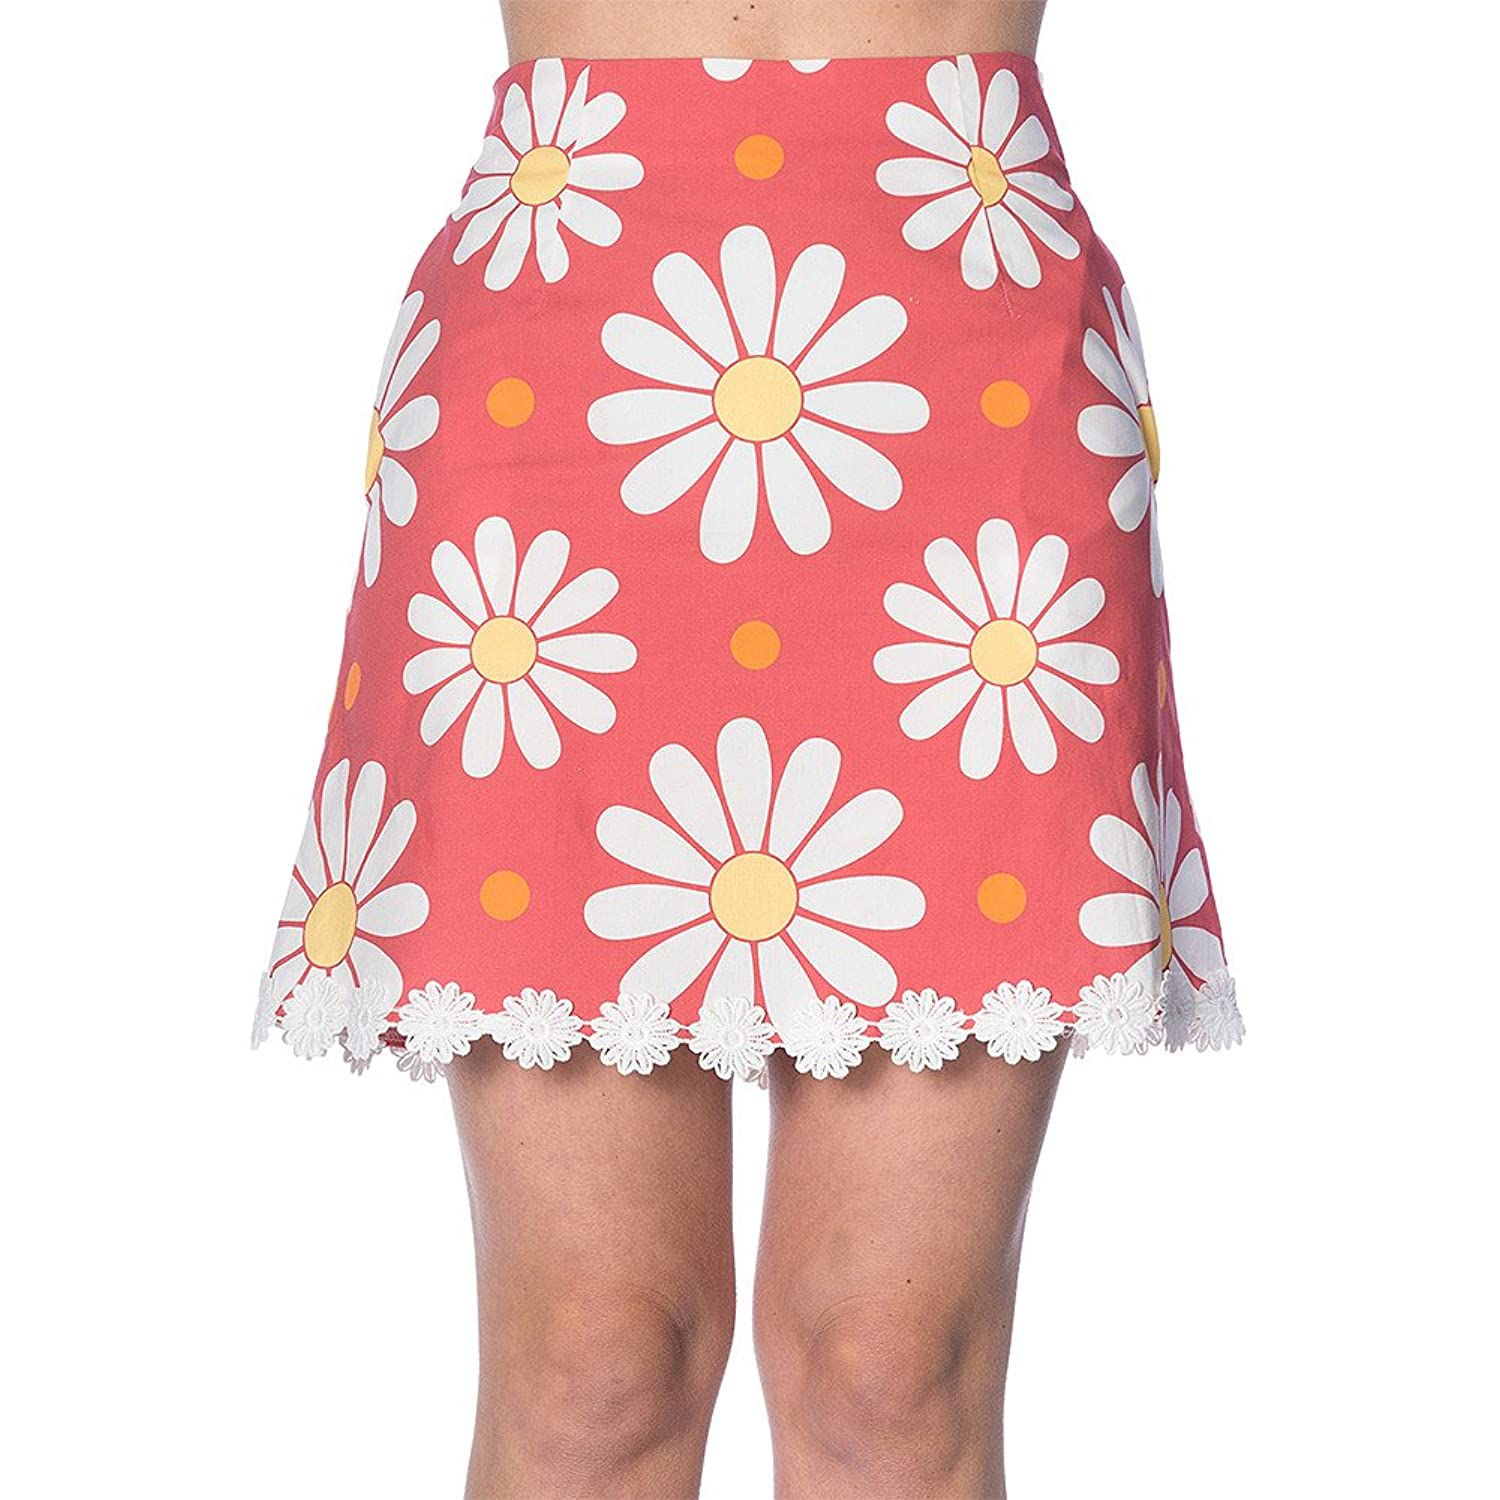 Retro Skirts: Vintage, Pencil, Circle, & Plus Sizes Banned Womens Crazy Daisy Mini Skirt (Coral) $26.72 AT vintagedancer.com